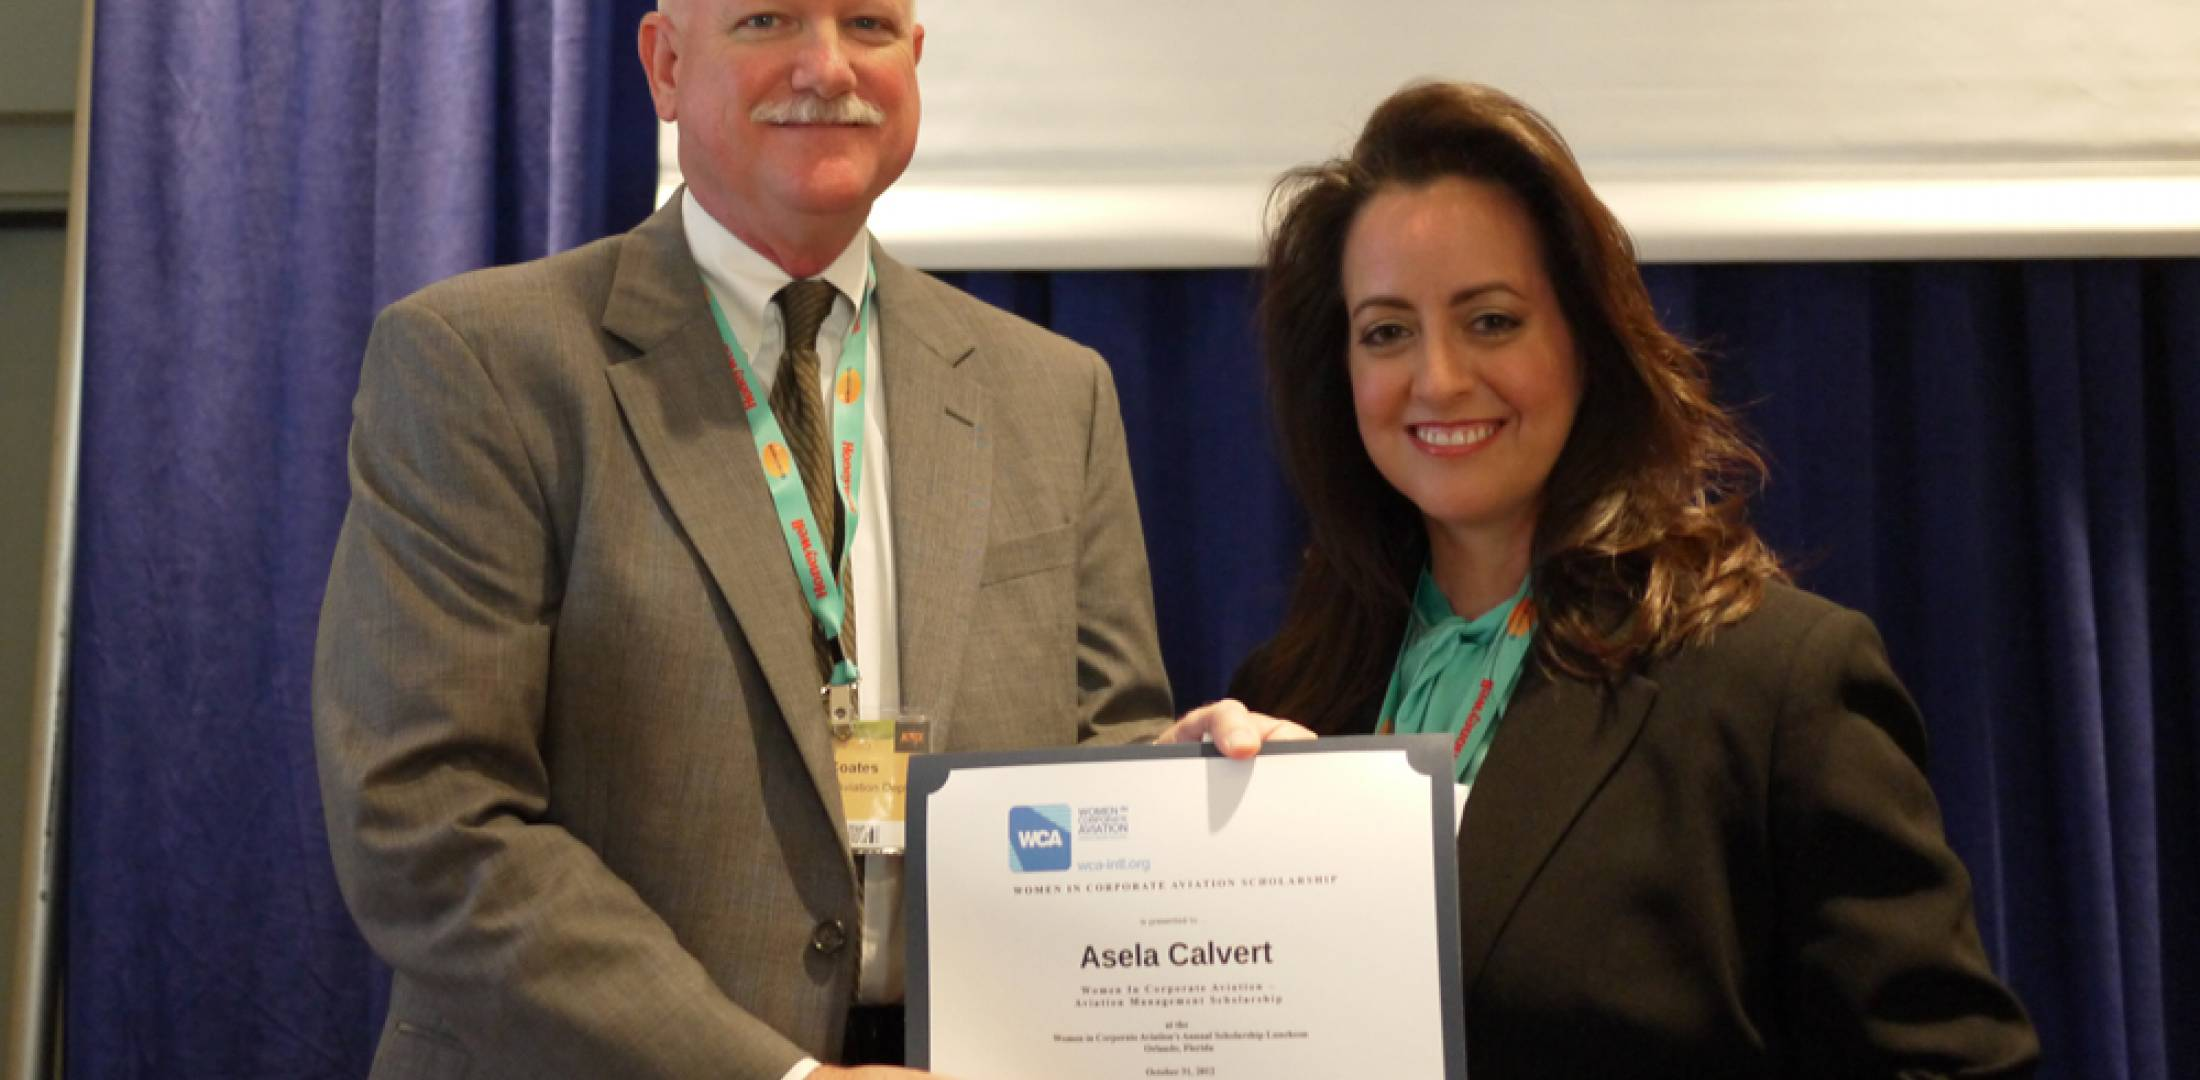 Asela Calvert was awarded the WCA Aviation Management Scholarship by Home Depot chief pilot Joe Coates.